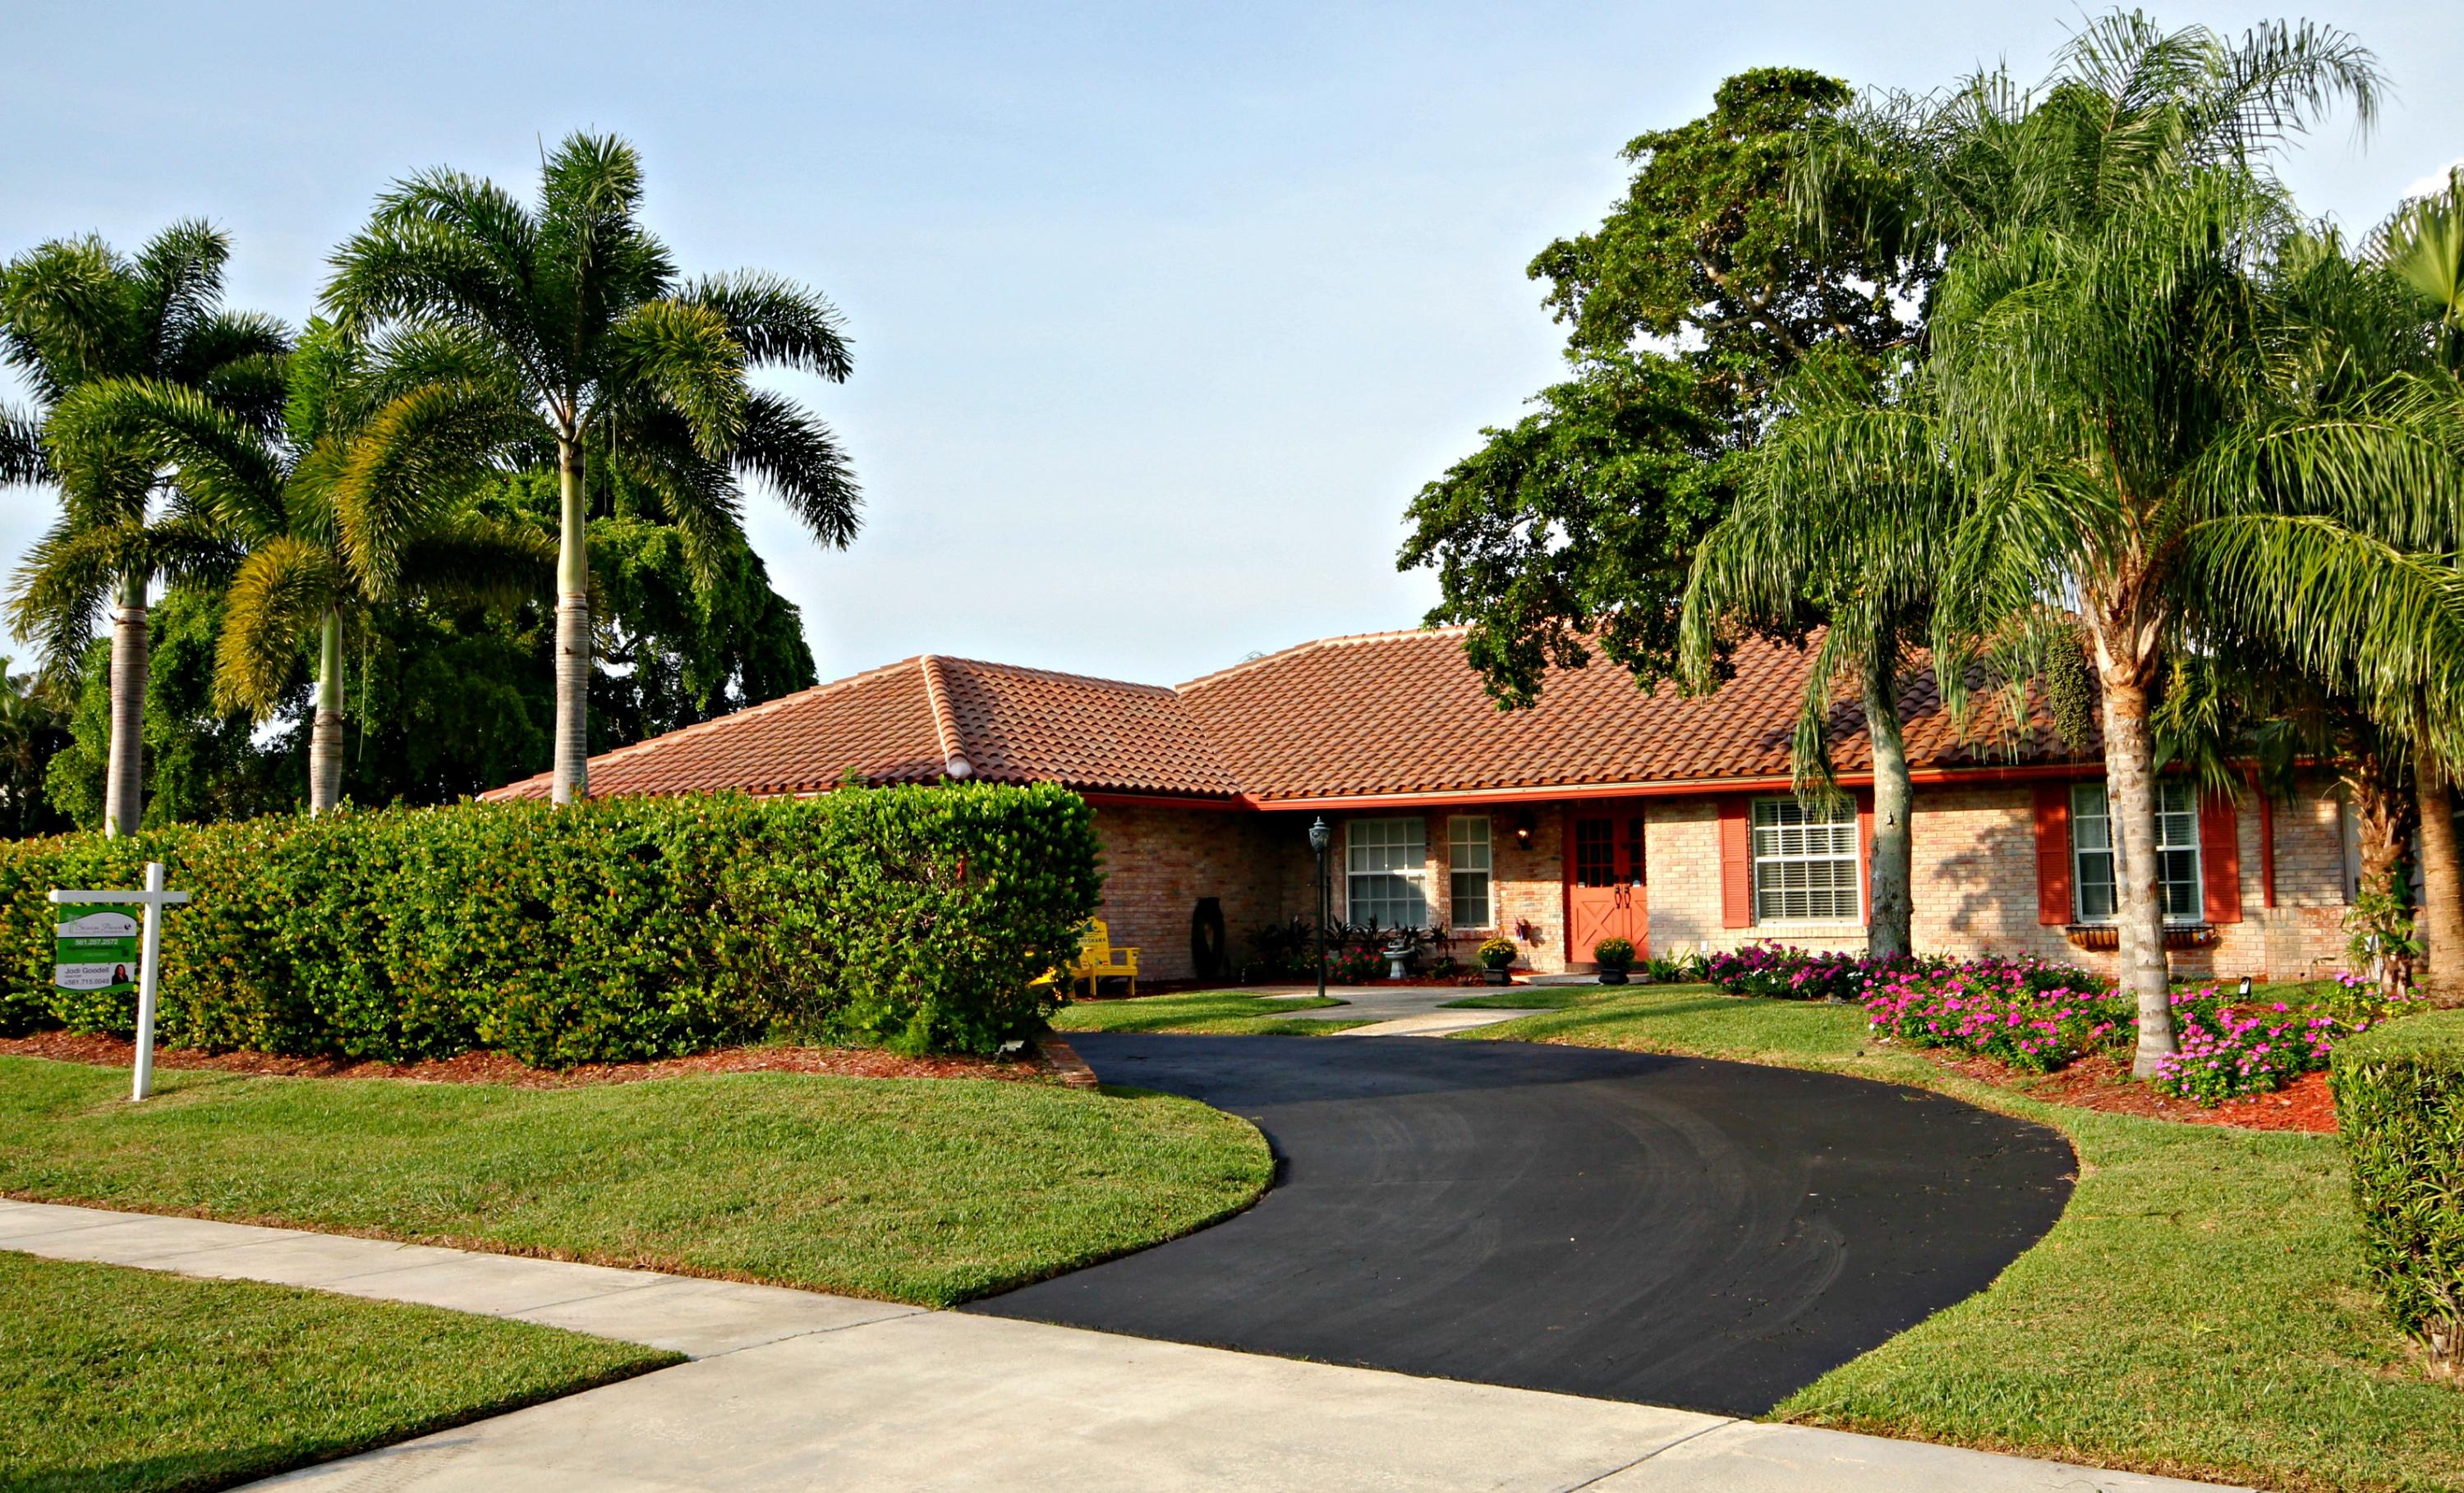 Home for sale in Winding Lakes Boca Raton Florida